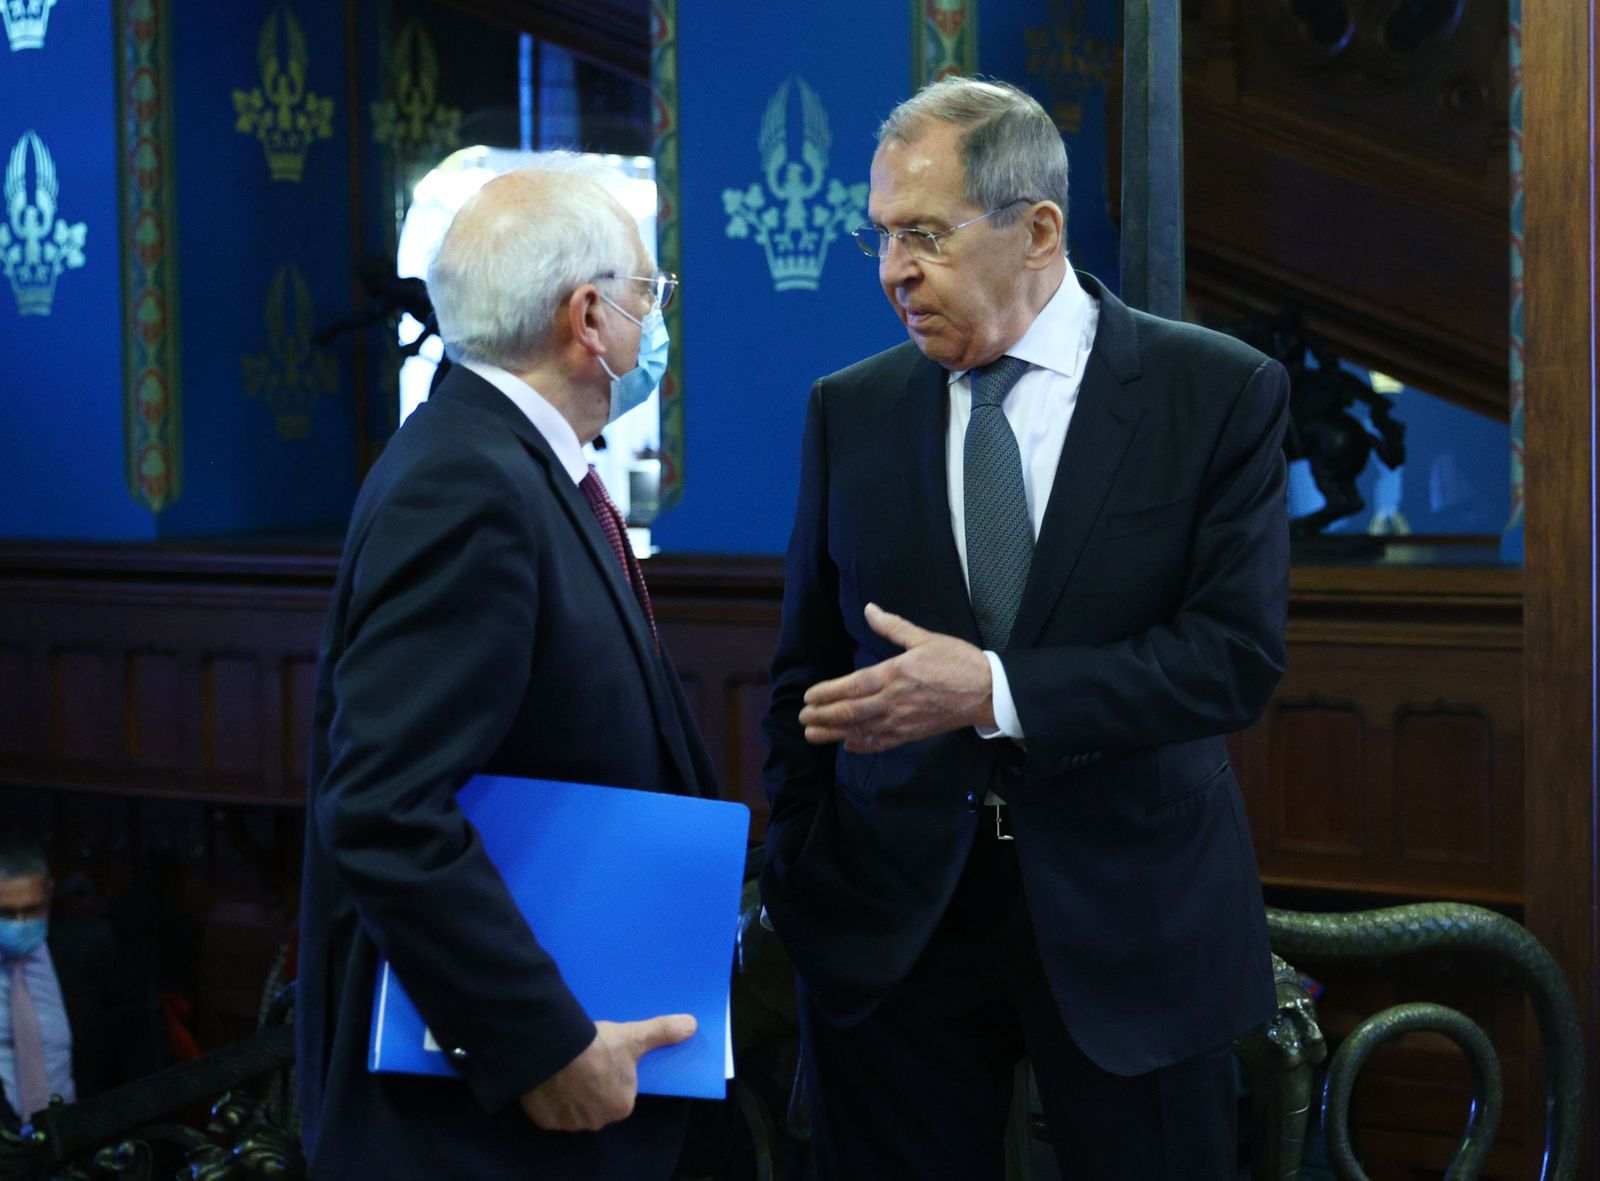 High Representative of the EU for Foreign Affairs and Security Policy, Josep Borrell visits Russia, Moscow, Russian Federation - 05 Feb 2021